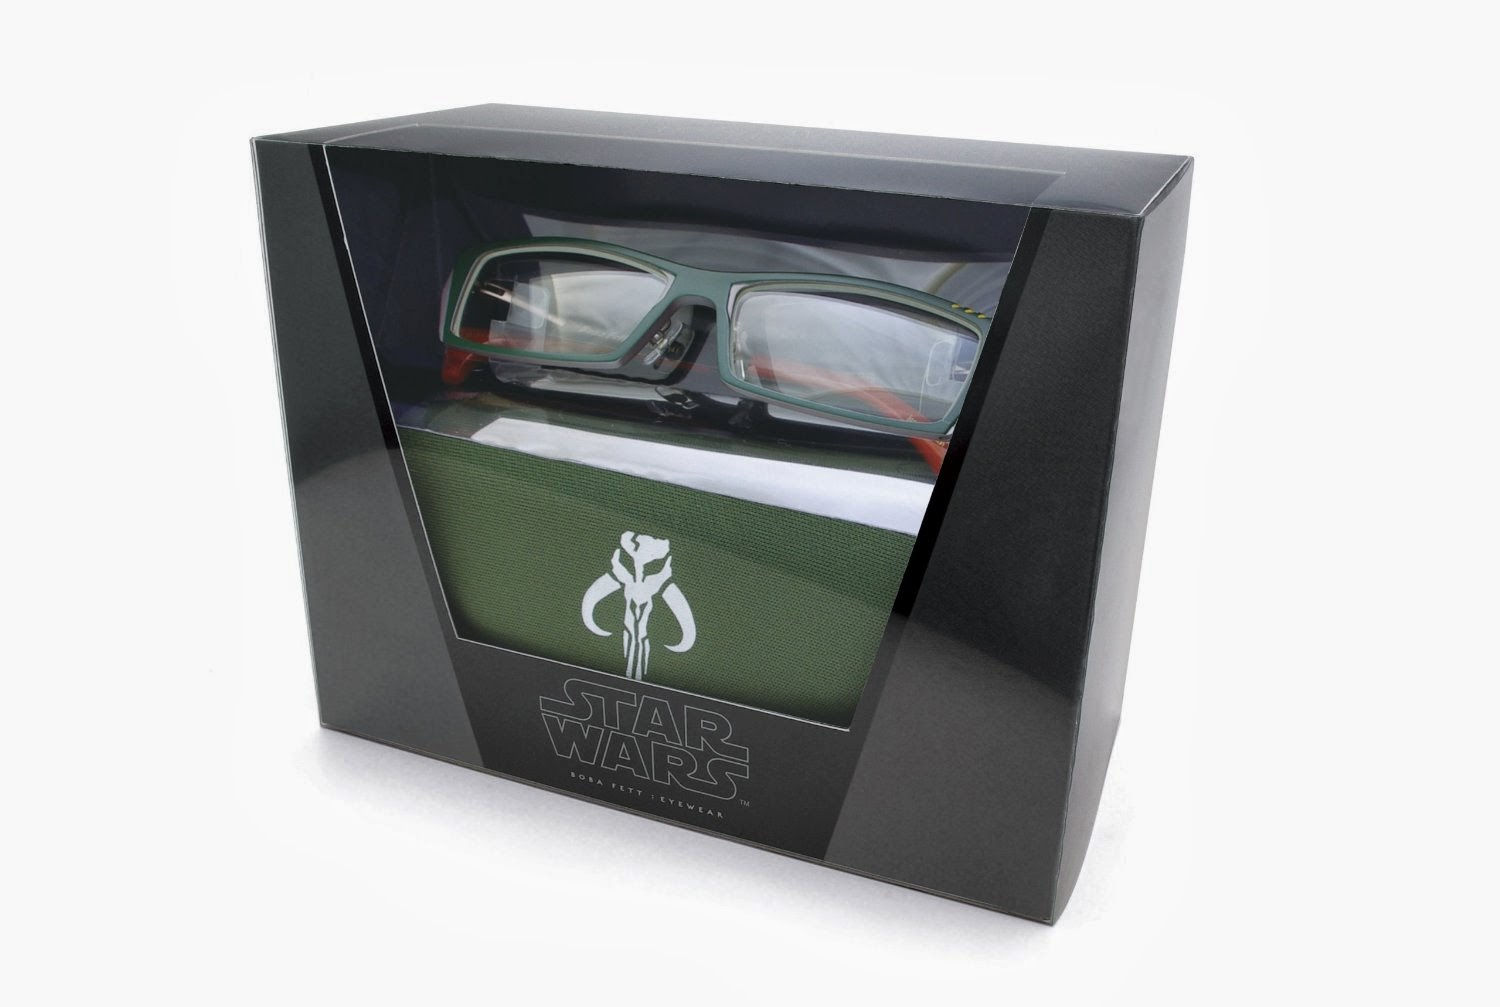 Boba Fett Star Wars Eyewear